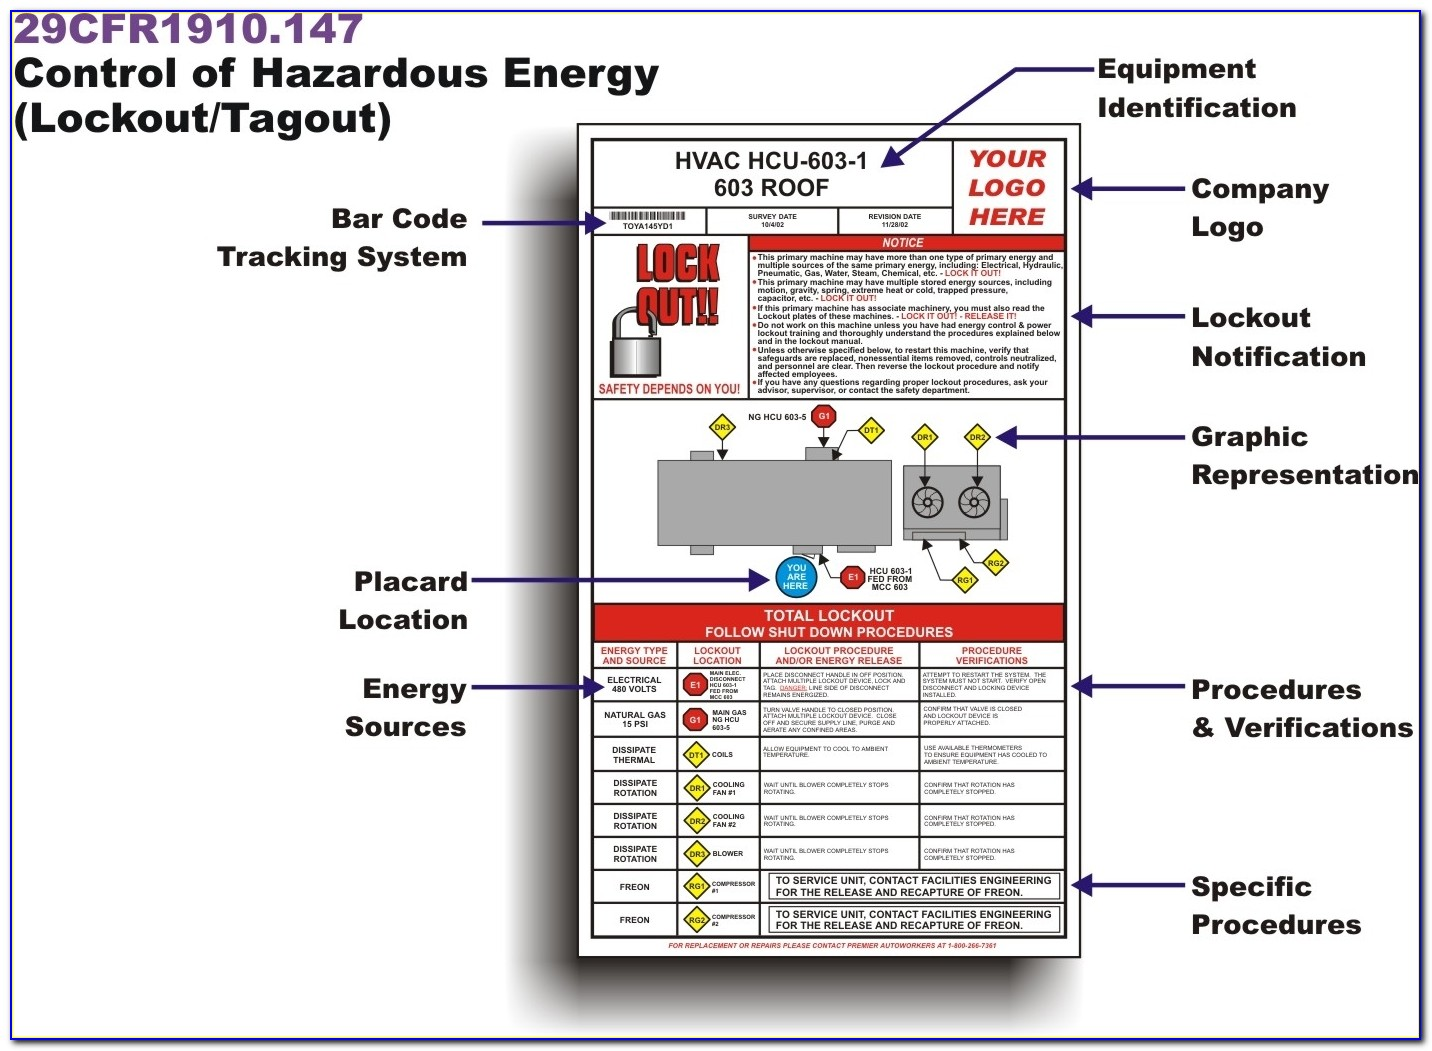 Lockout Procedures Lockout Diagrams, Lockout Tags, Tagout Throughout Lock Out Tag Out Procedures Template